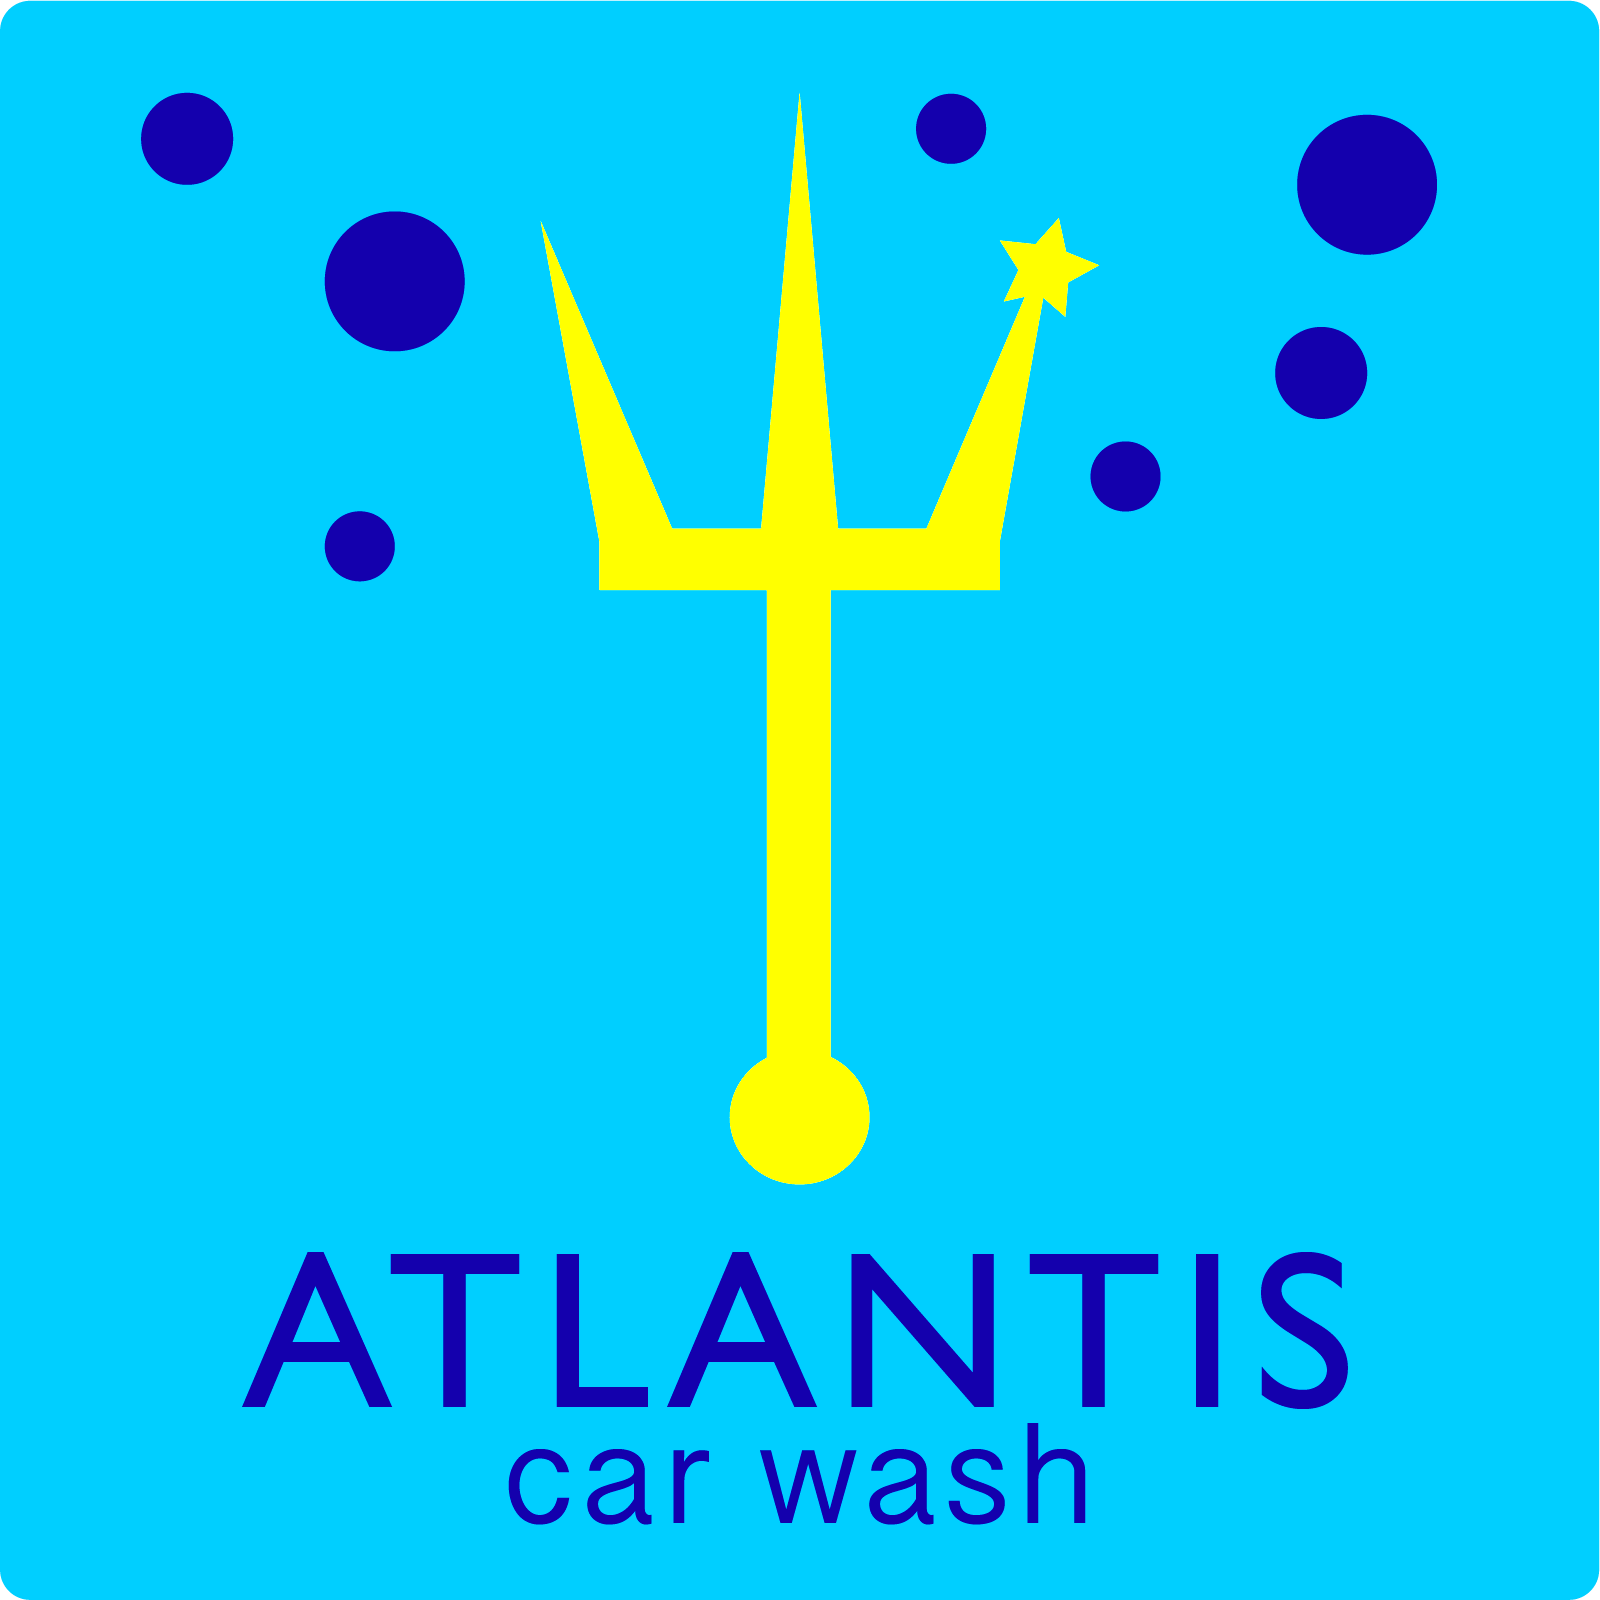 Atlantis Car Wash logo (2).png